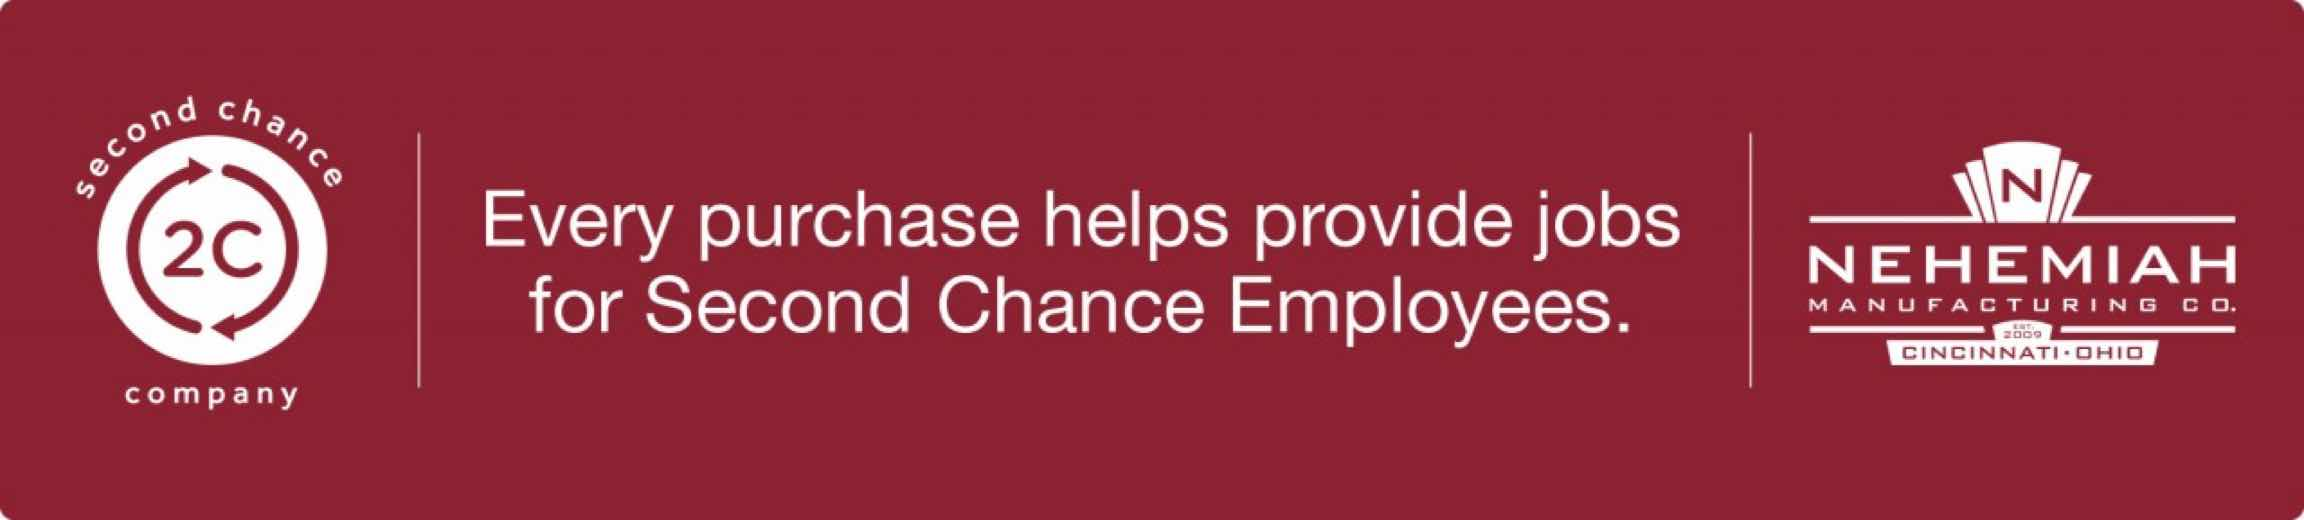 Every purchase helps provide jobs for Second Chance Employees.